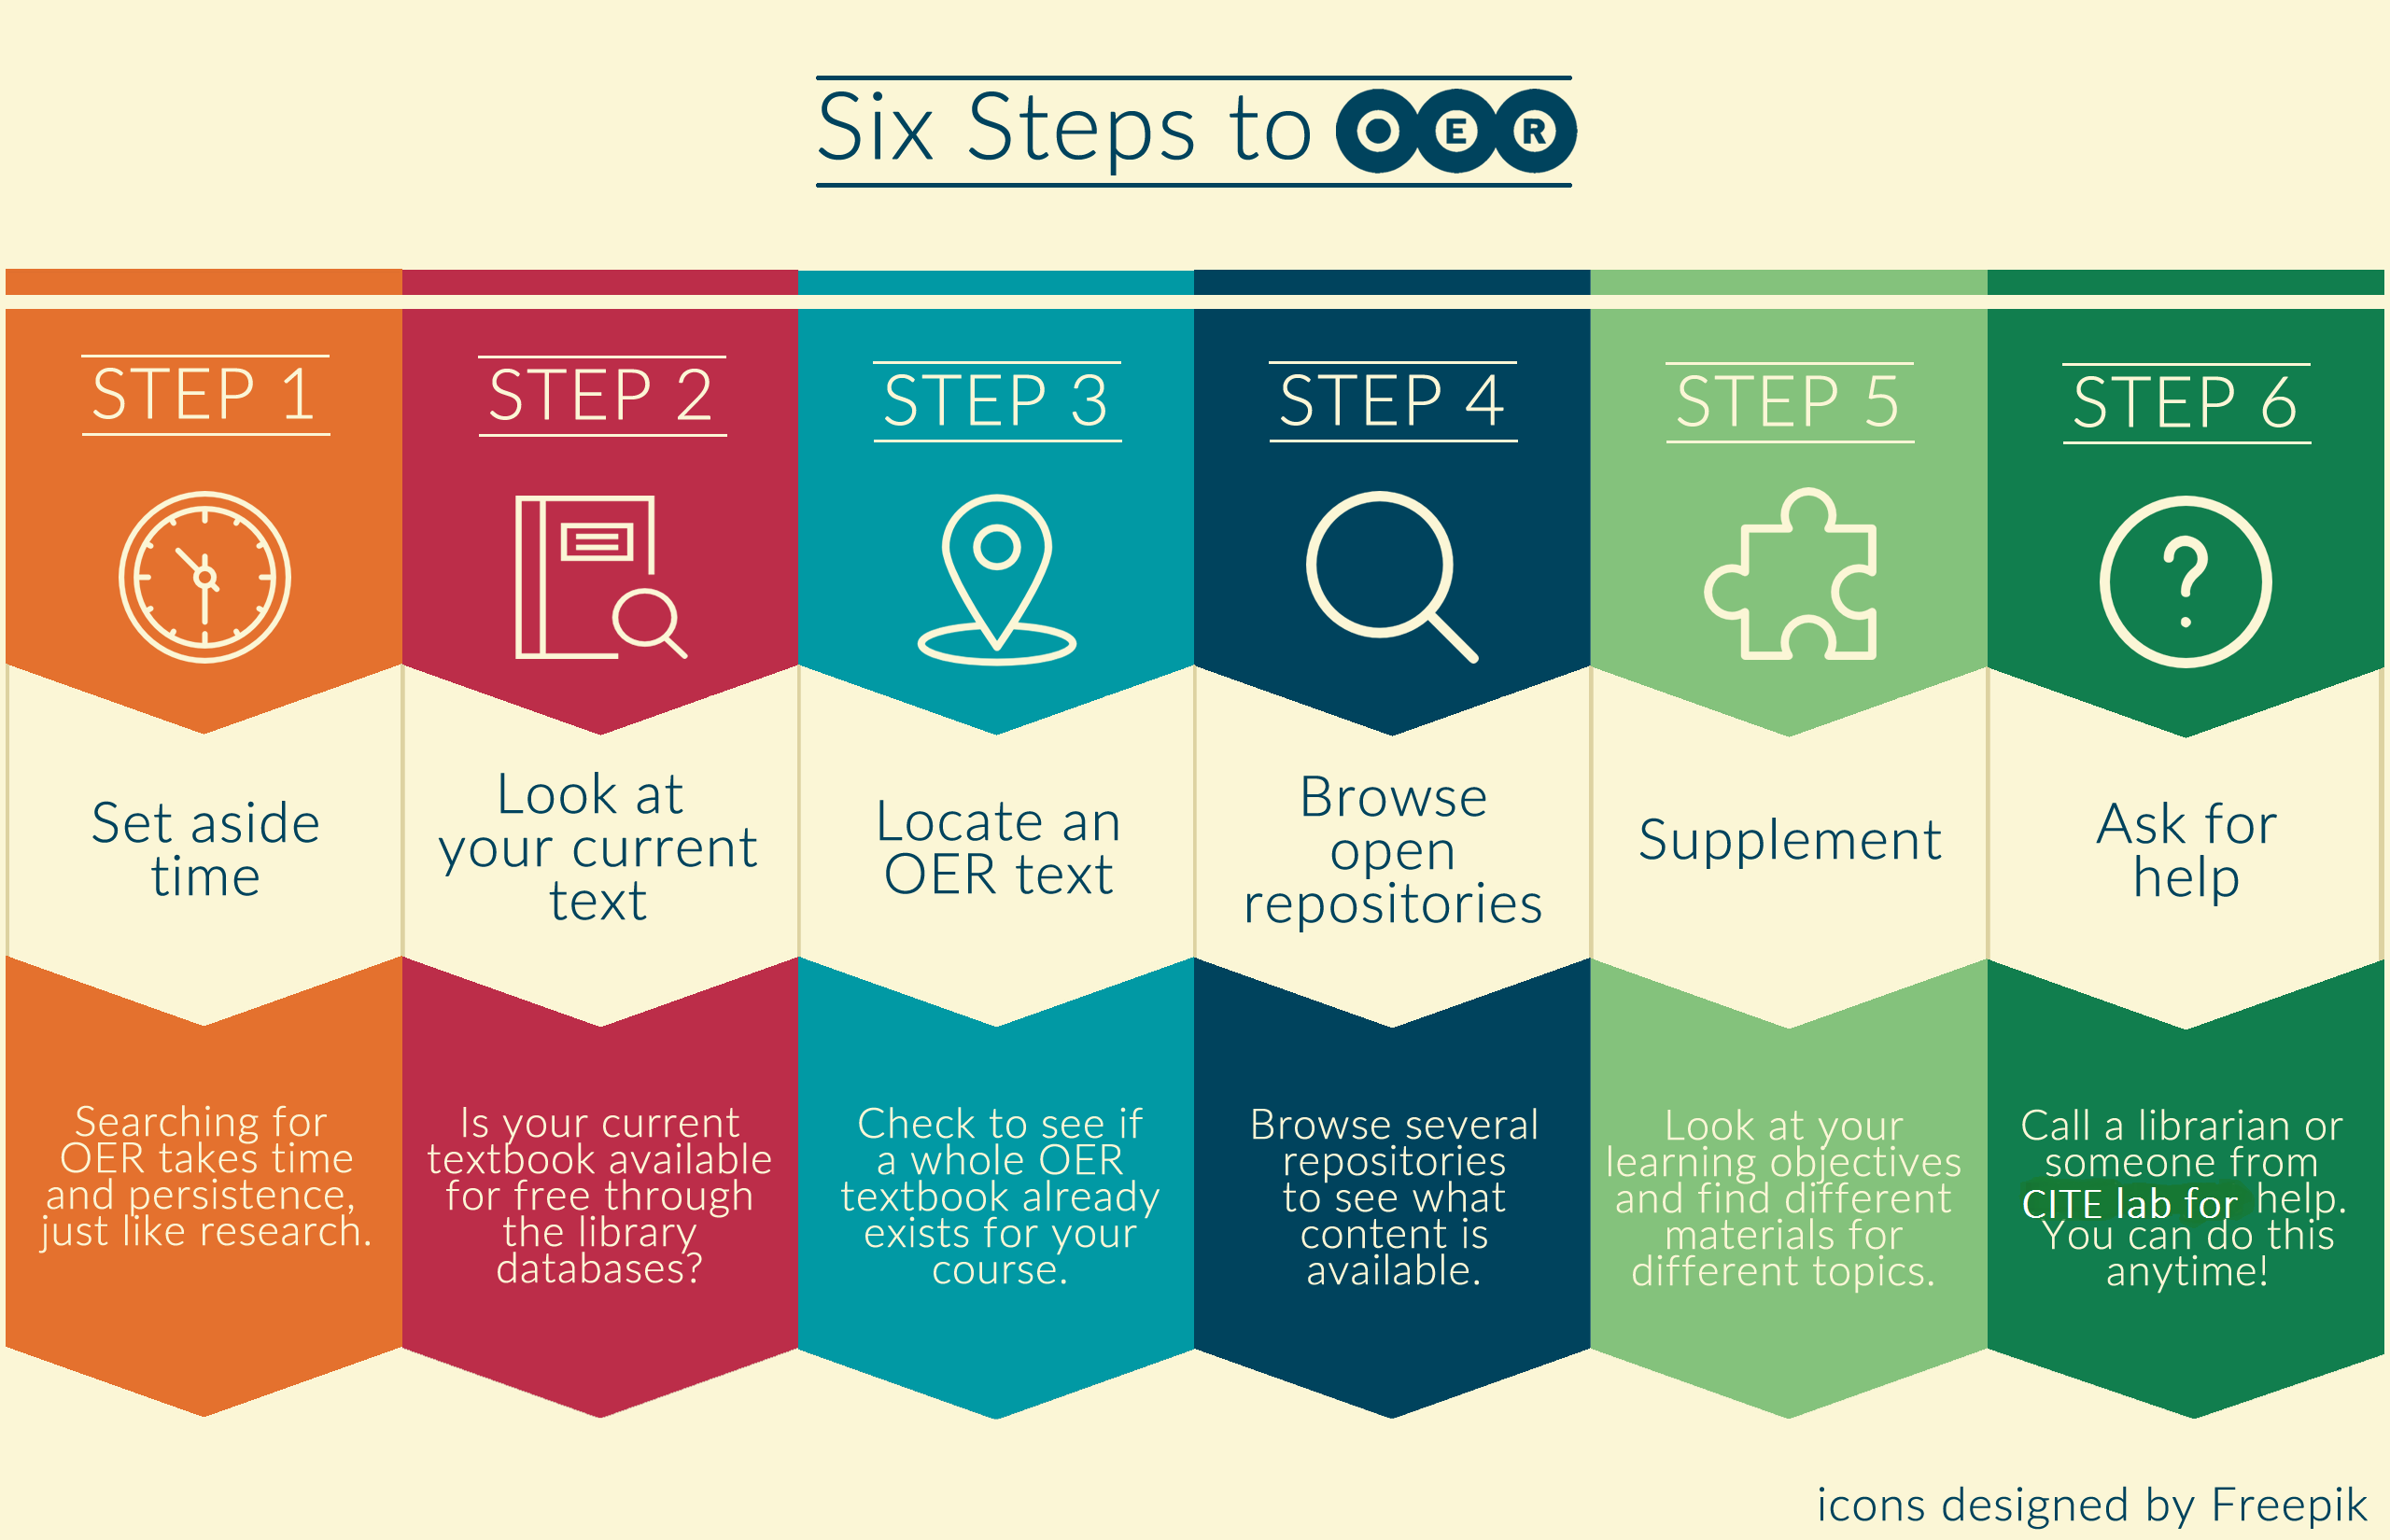 6 steps to OER